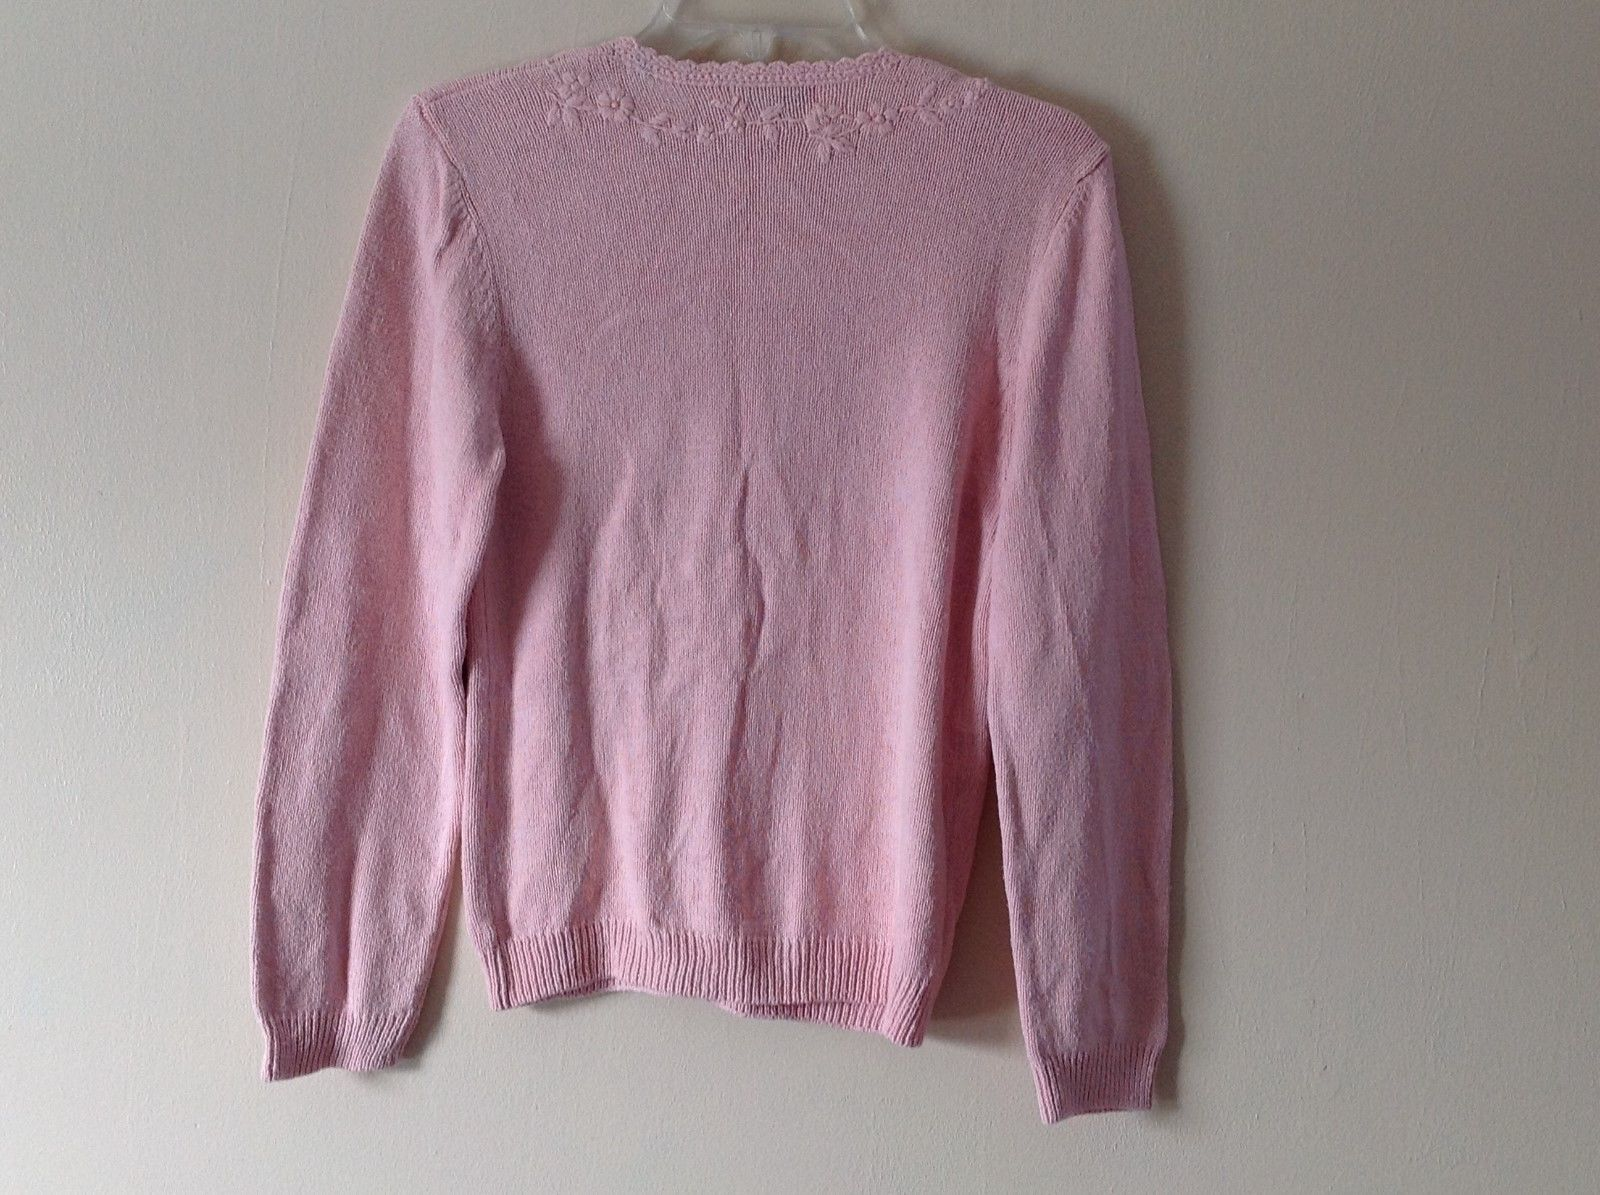 Wemen L.L. Bean Pink knitted v neck cardigan/ sweater pink